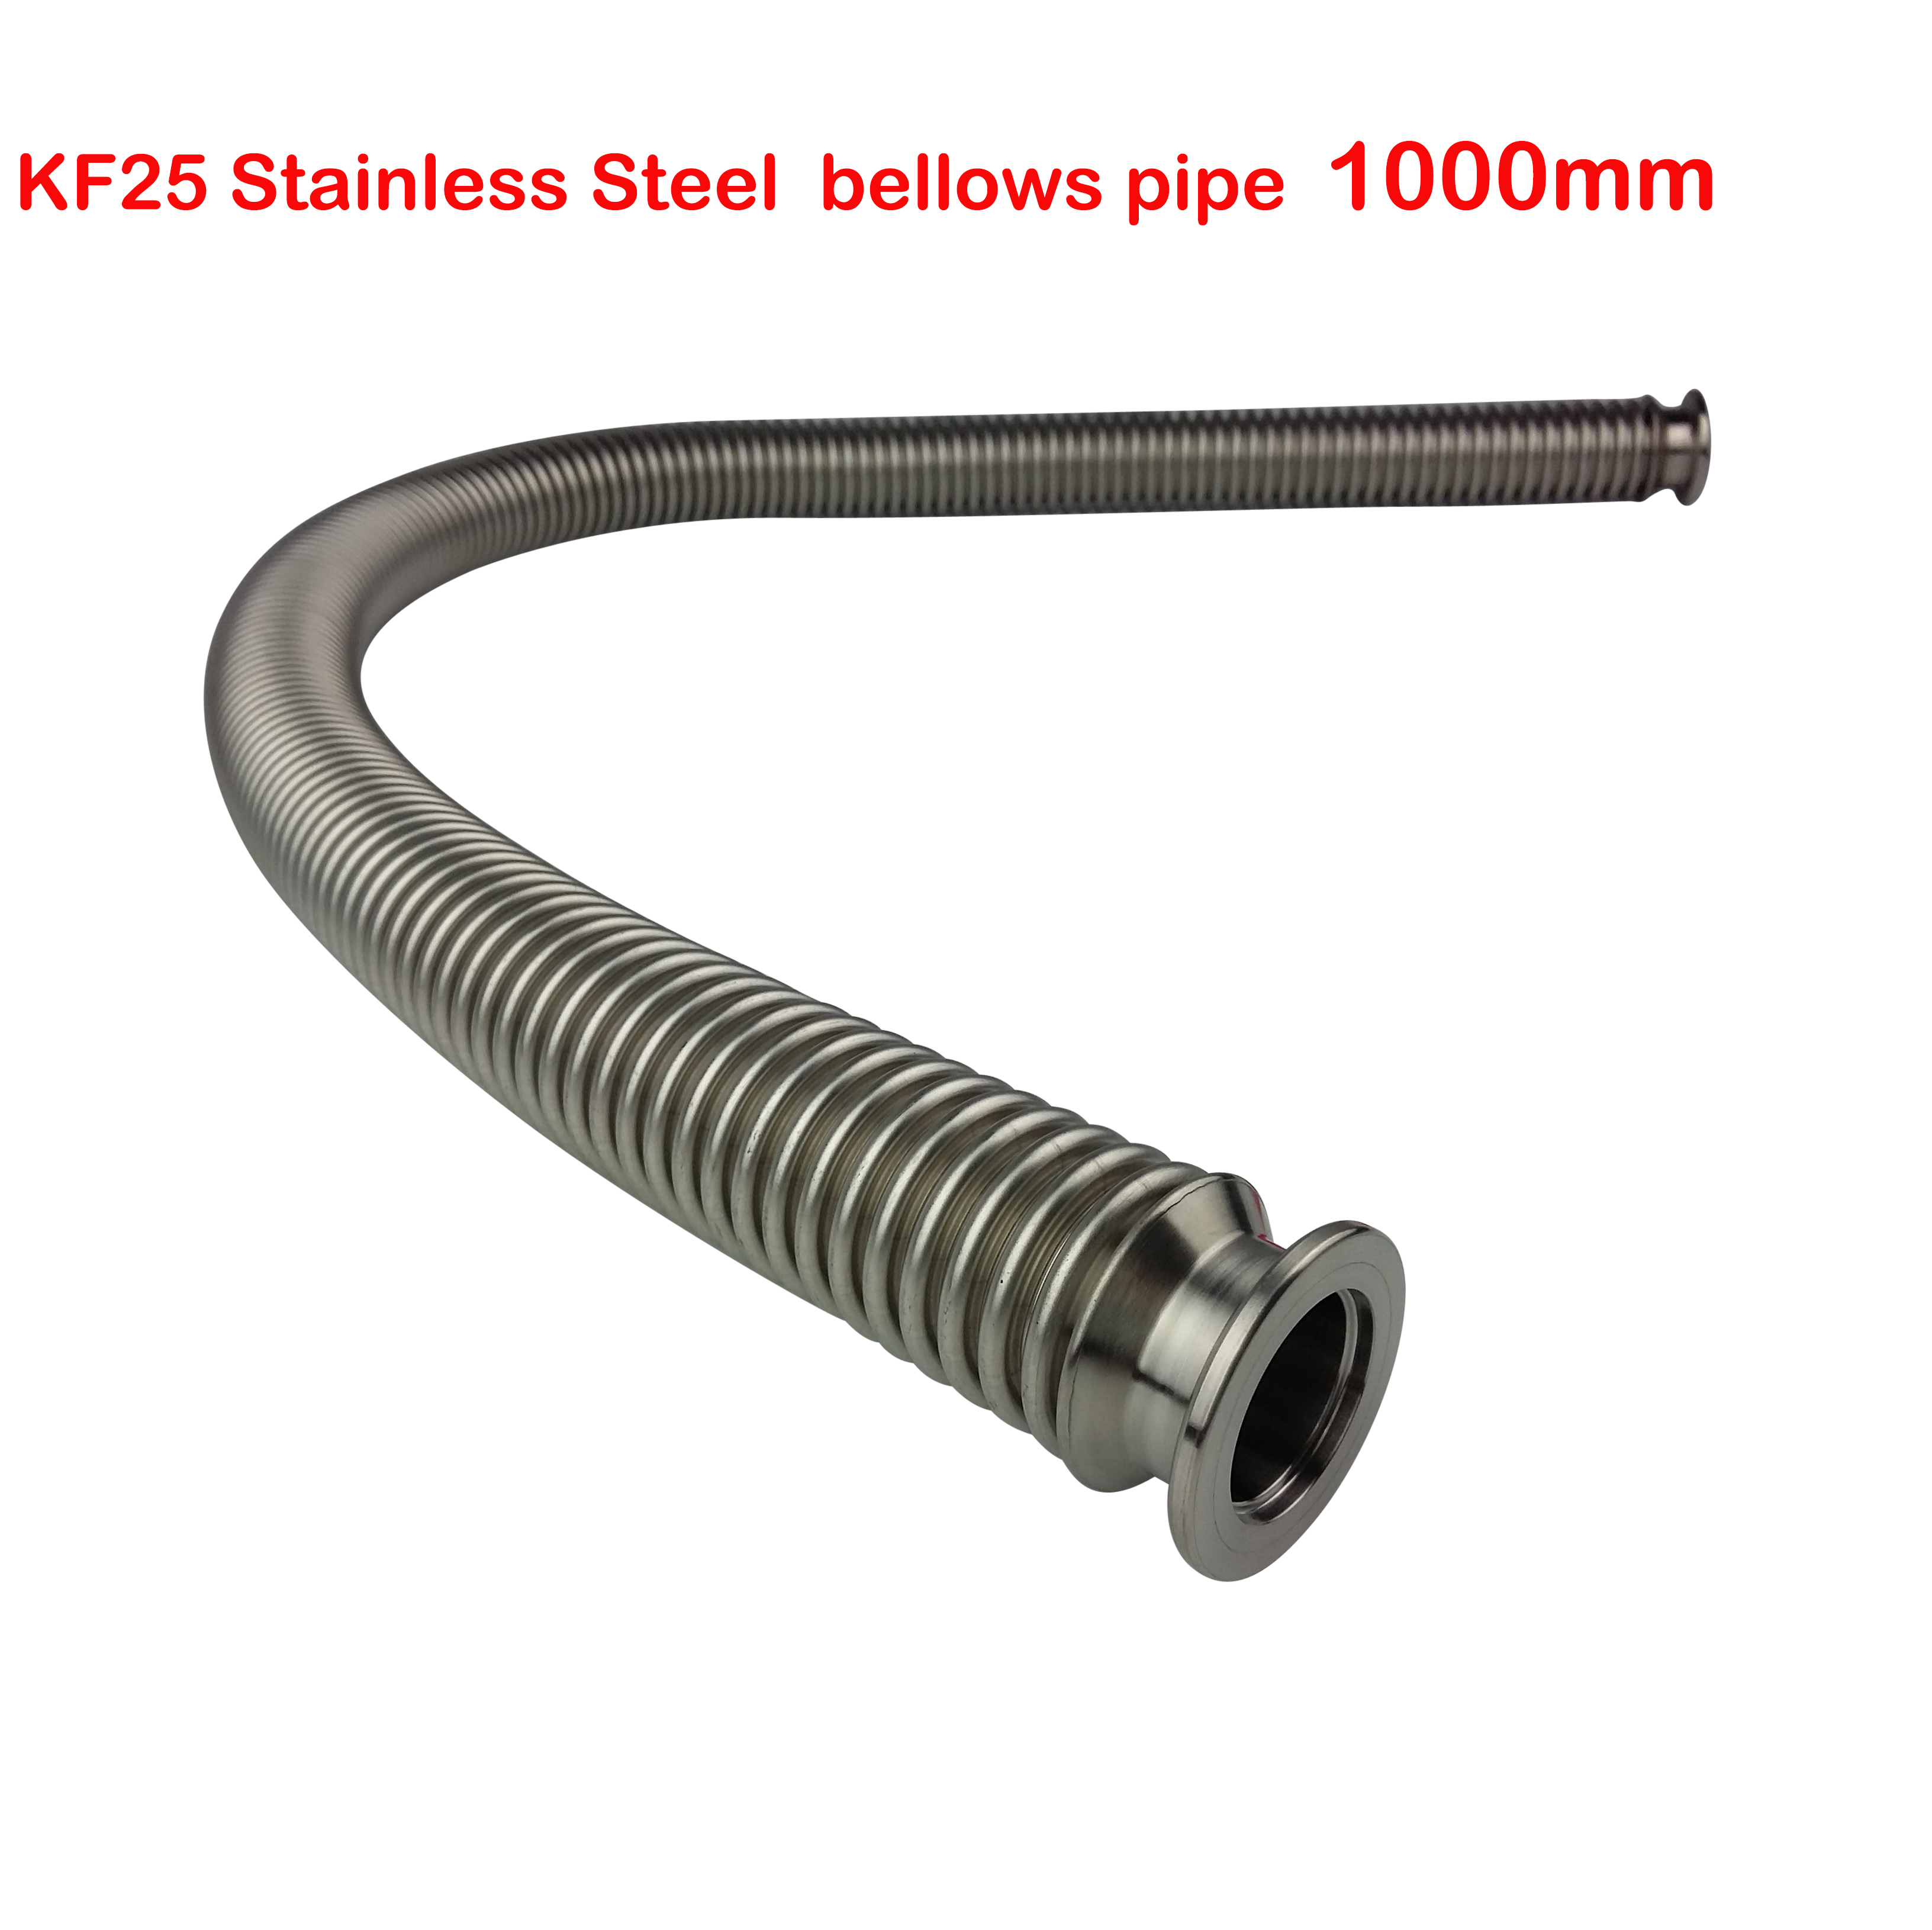 Qualified 10pcs 20mm Automotive Industry High Pressure Tubing Water Pipe Heater Pipe Return Pipe Hydraulic Pipe Hose Piston Spring Card Automobiles & Motorcycles Interior Accessories